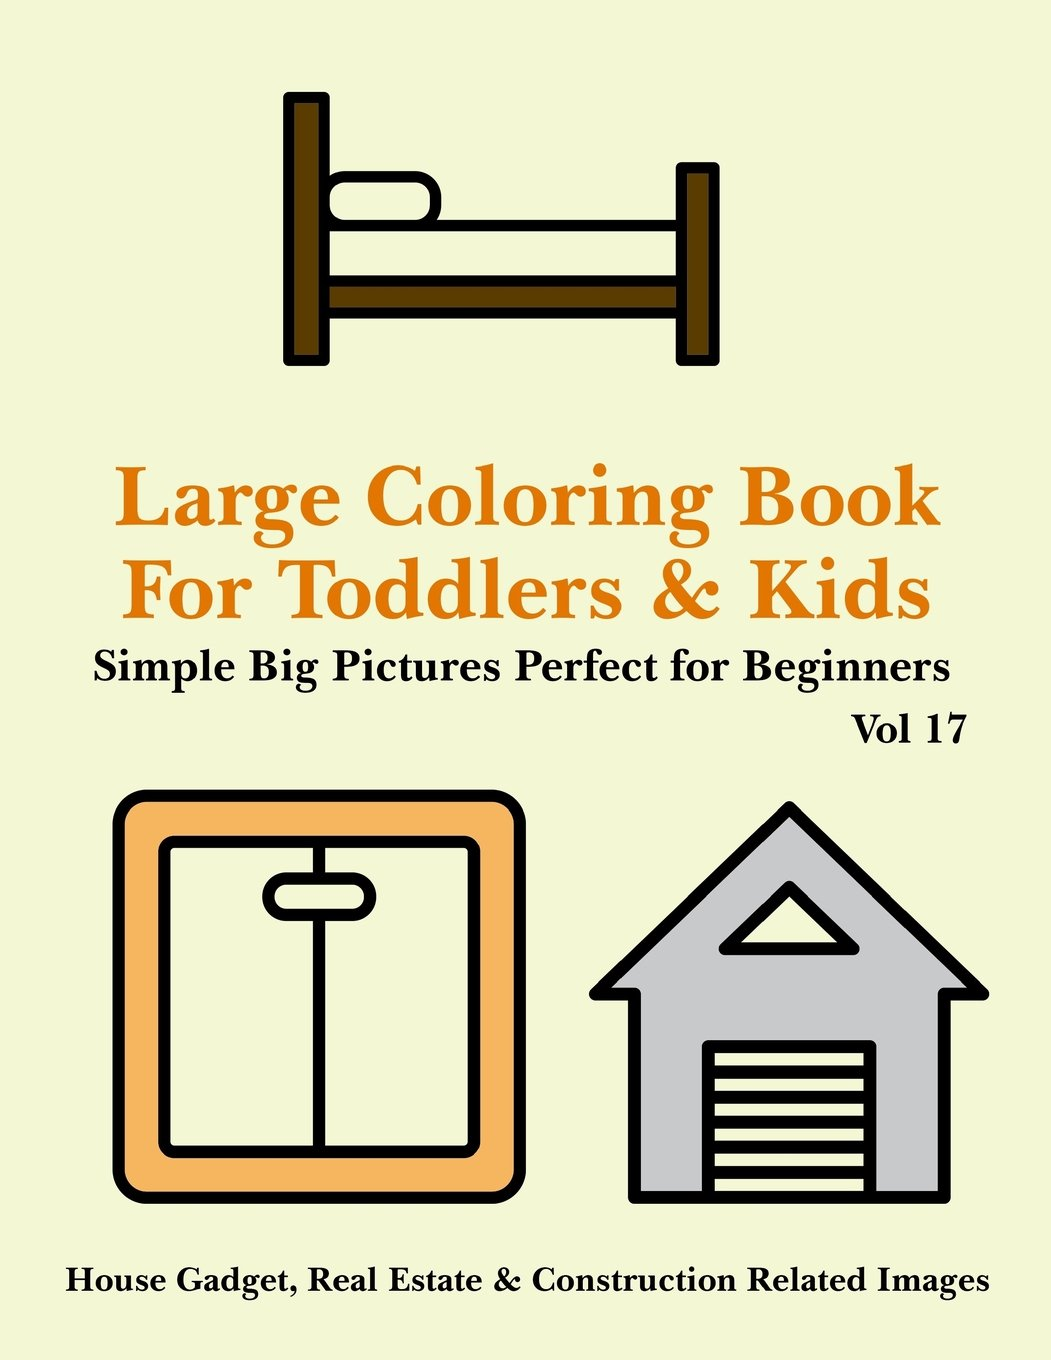 Large coloring book for toddlers and kids simple big pictures perfect for beginners house gadget real estate construction related images vol books